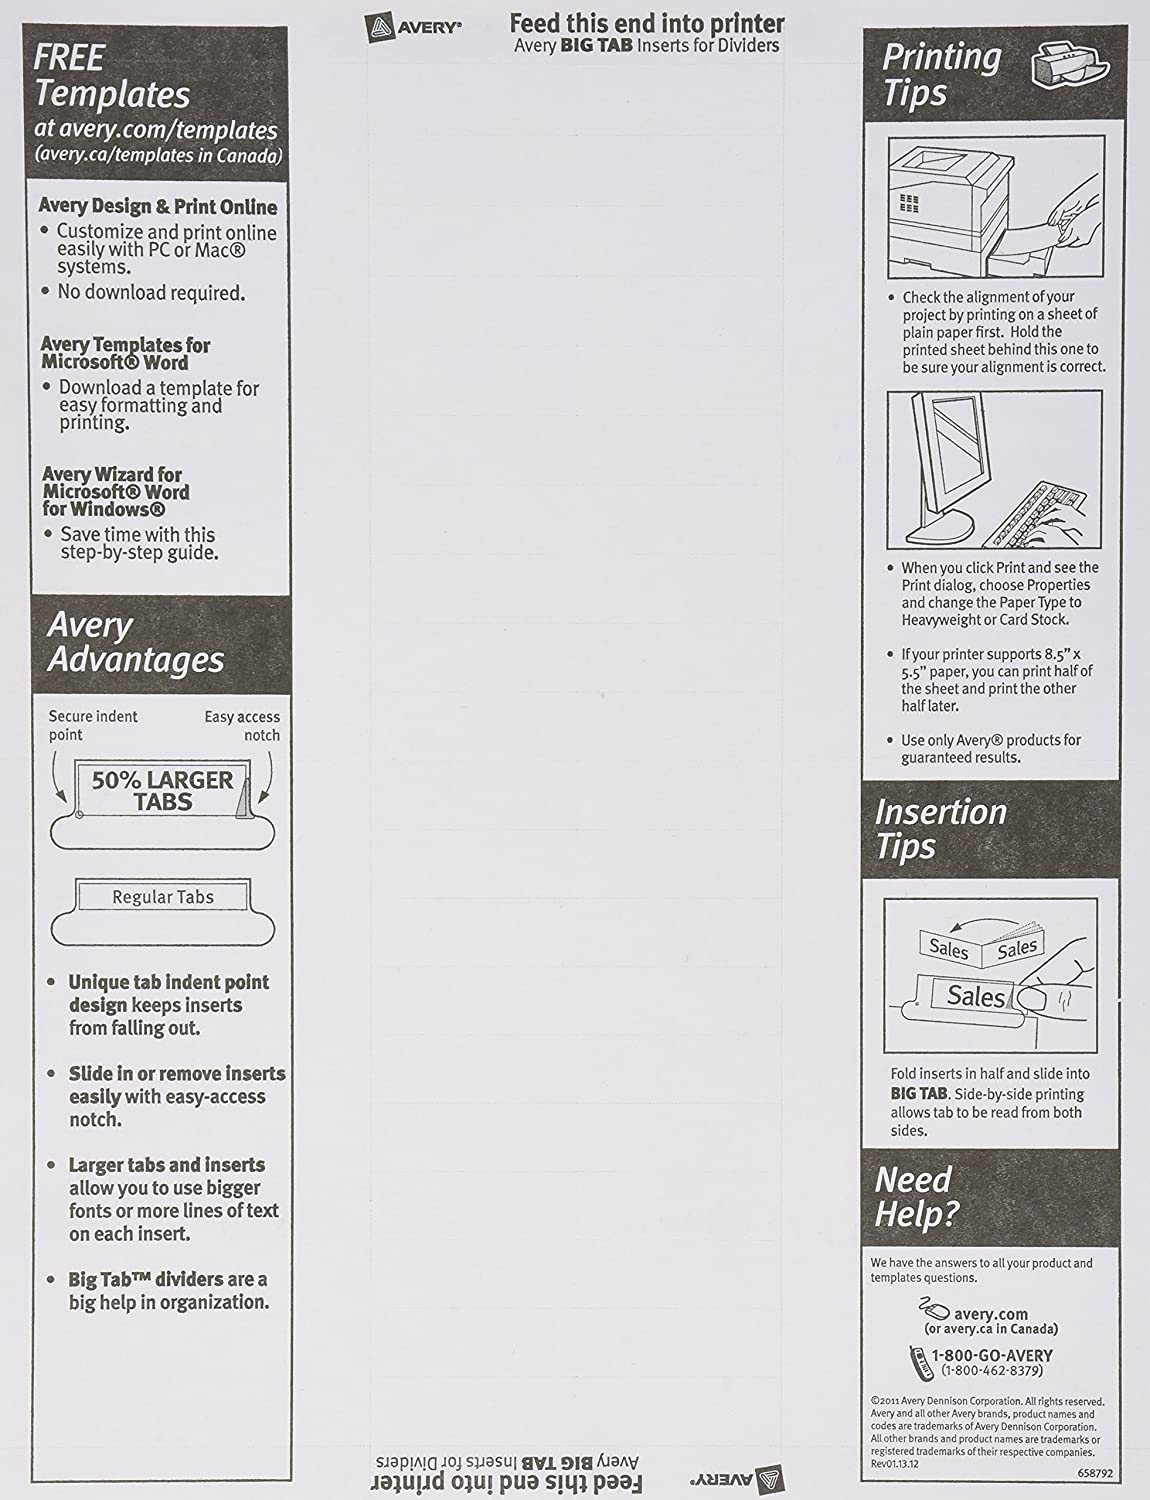 Avery Big Tab Insertable Dividers, Buff Paper, 8 Clear Tabs, 1 Set (11112)